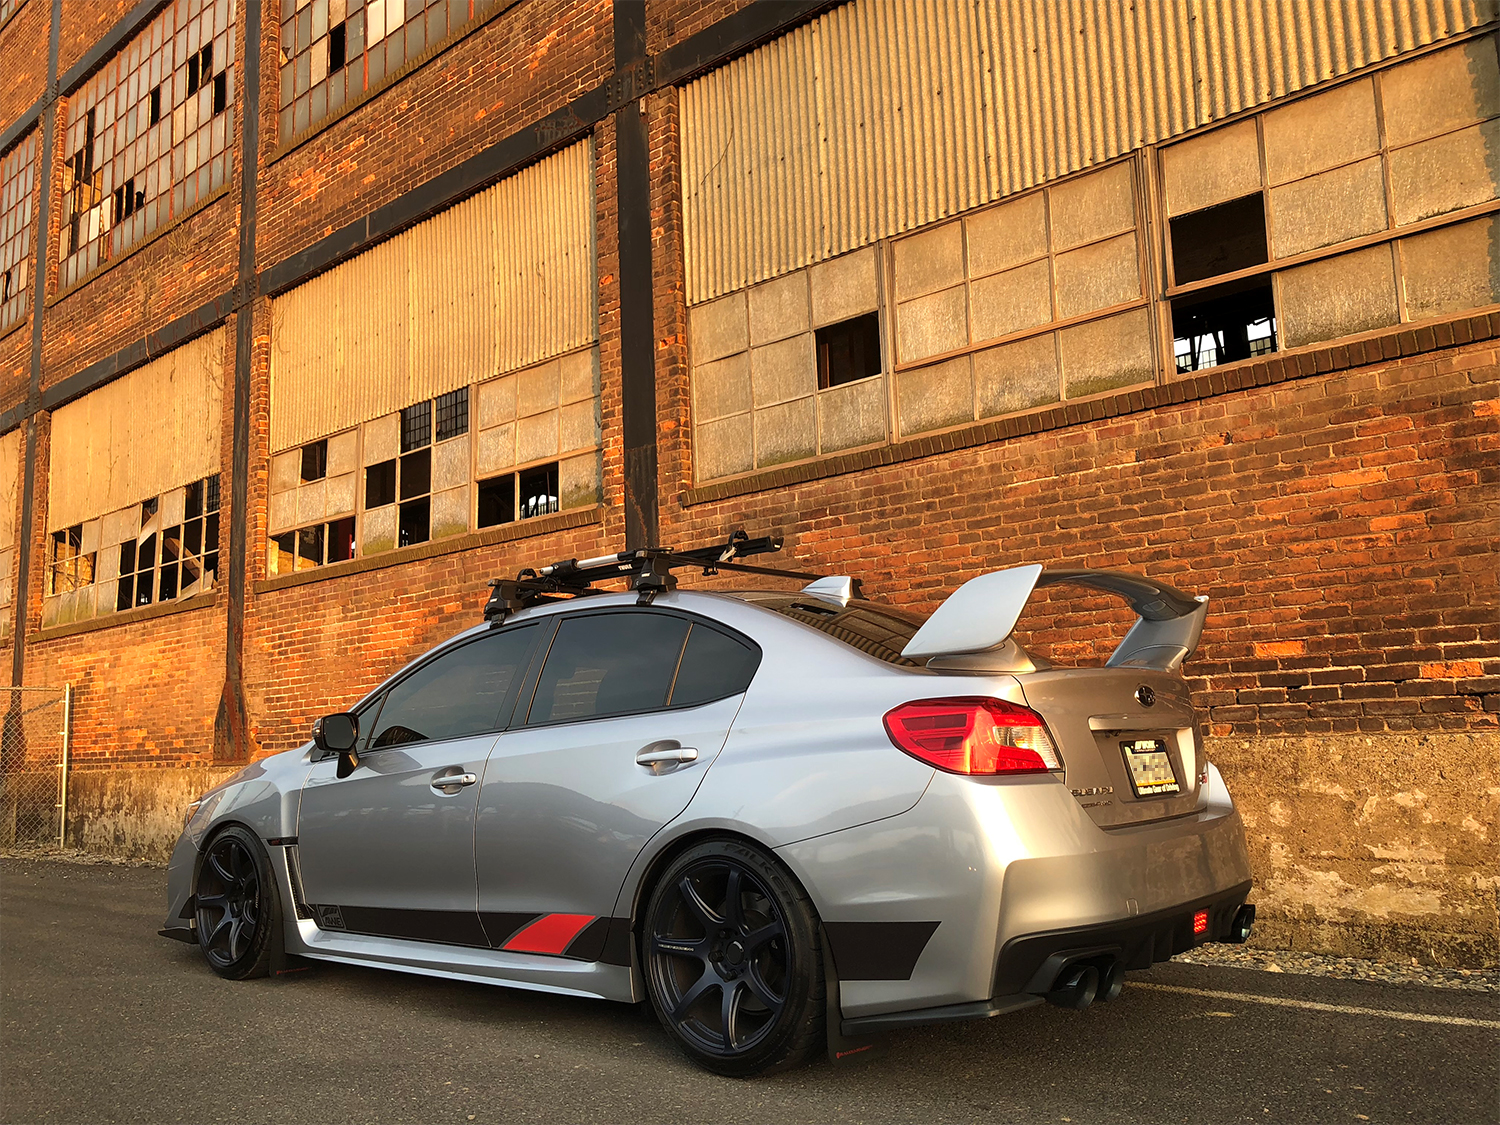 Subaru Dealers Near Me >> SOUND CONNECTION Toyota Prius on WORK Emotion CR2P in Bronze (AHG) / T7R2P in White (WHT ...